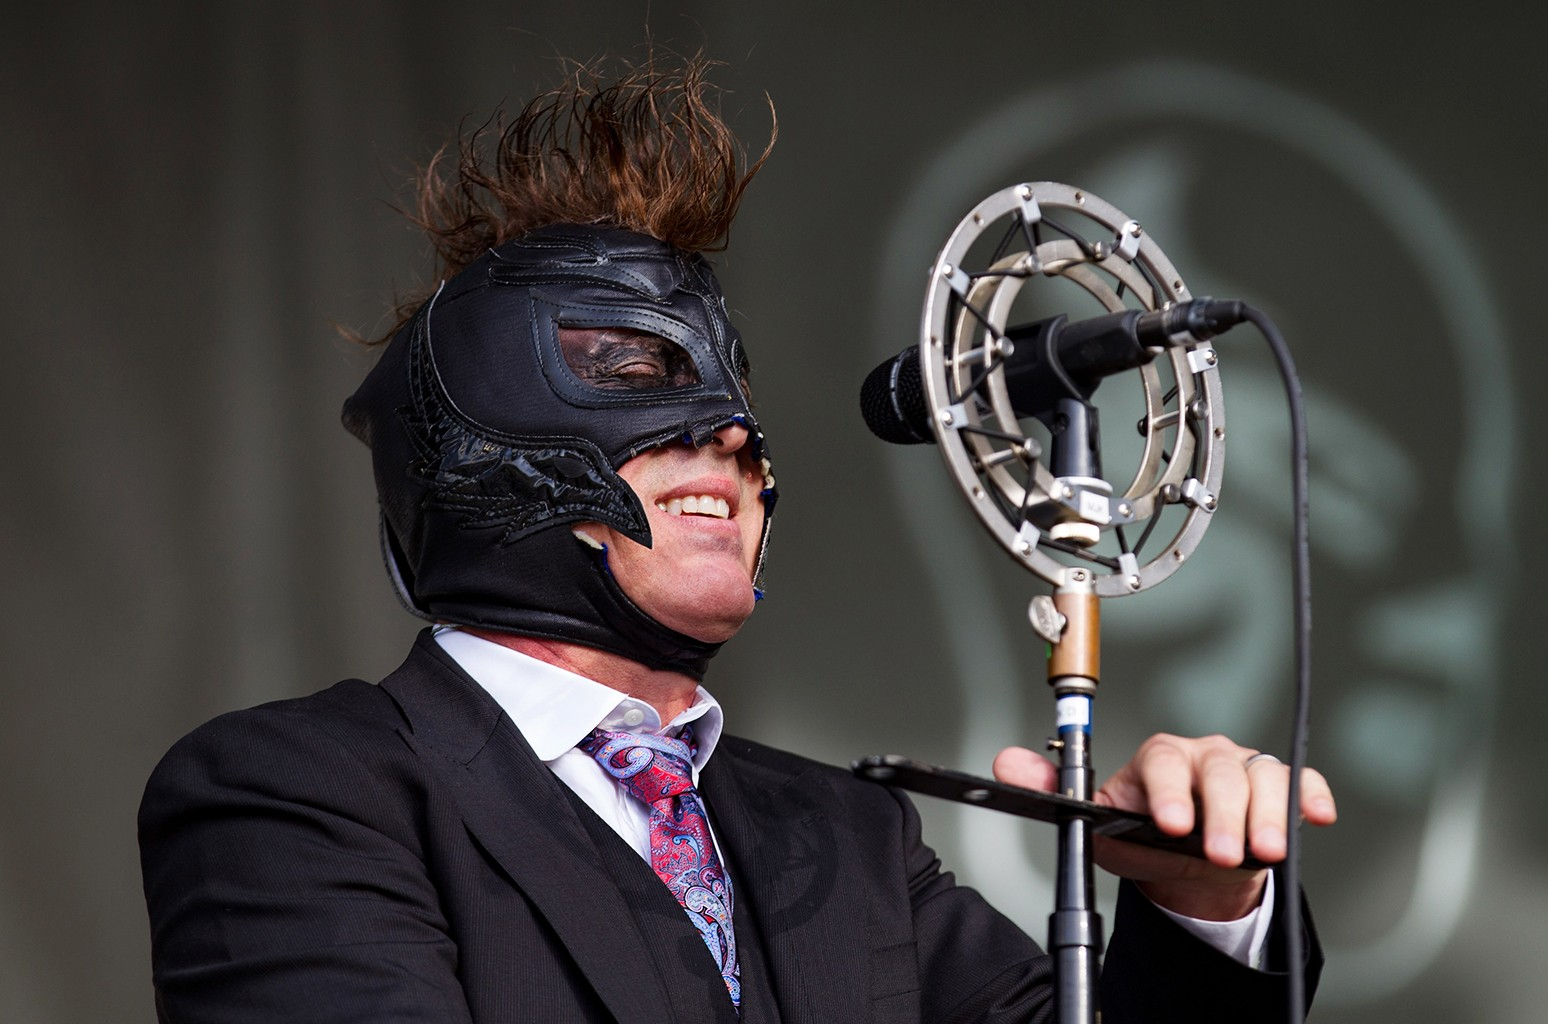 Tool performs at Aftershock Festival at Discovery Park on Oct. 23, 2016 in Sacramento, Calif.